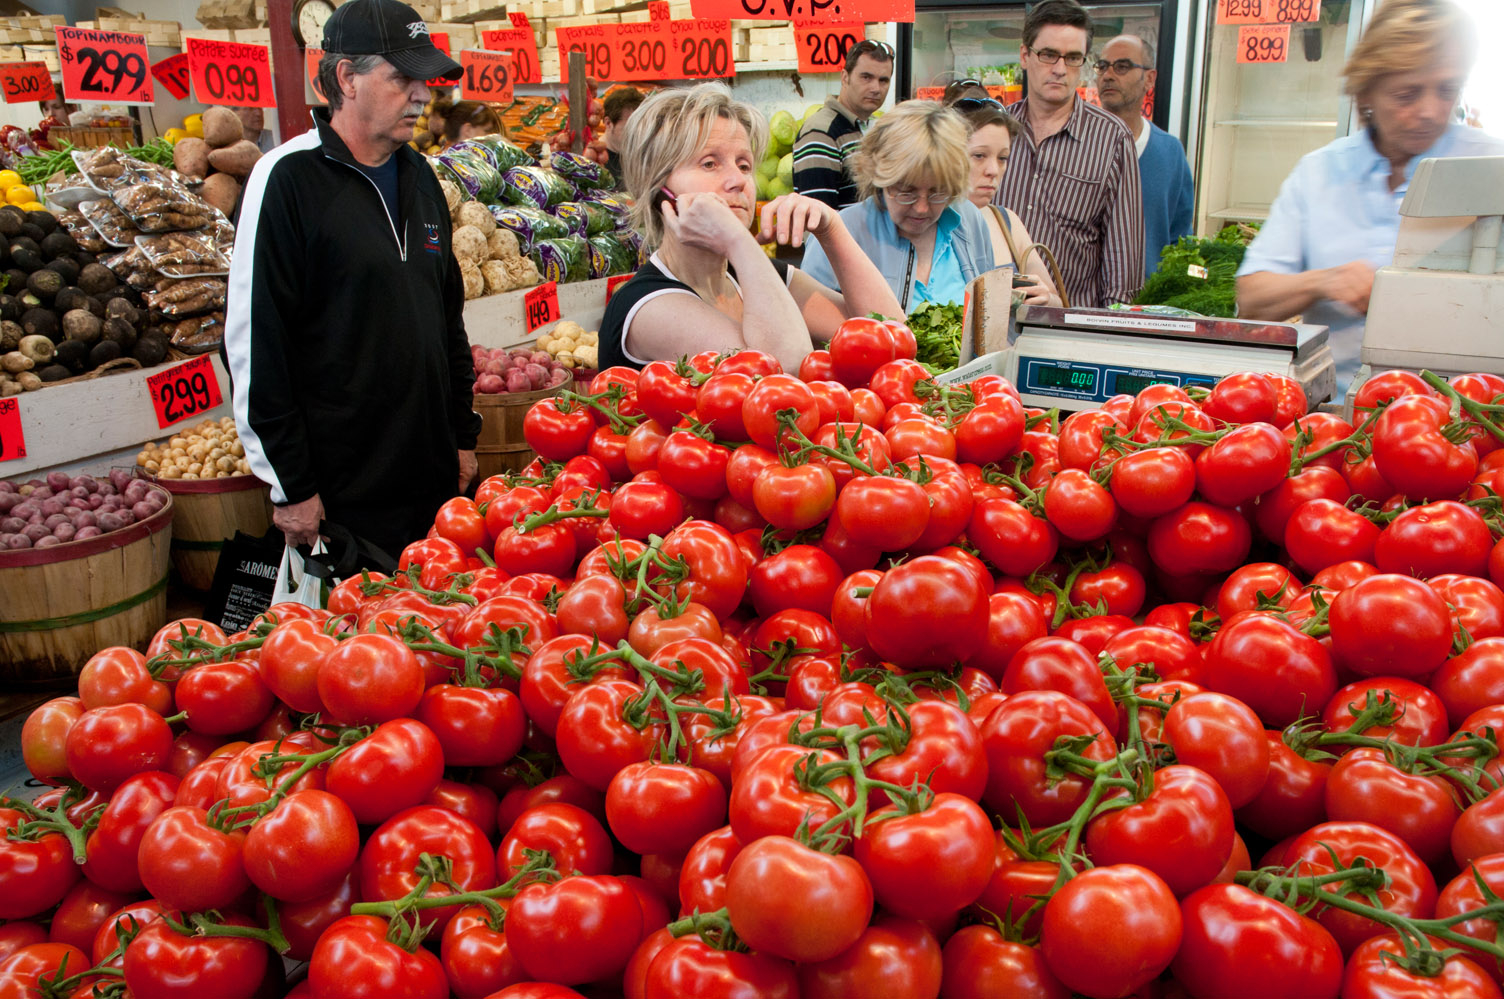 Buying tomatoes, Jean Talon Market, Montreal